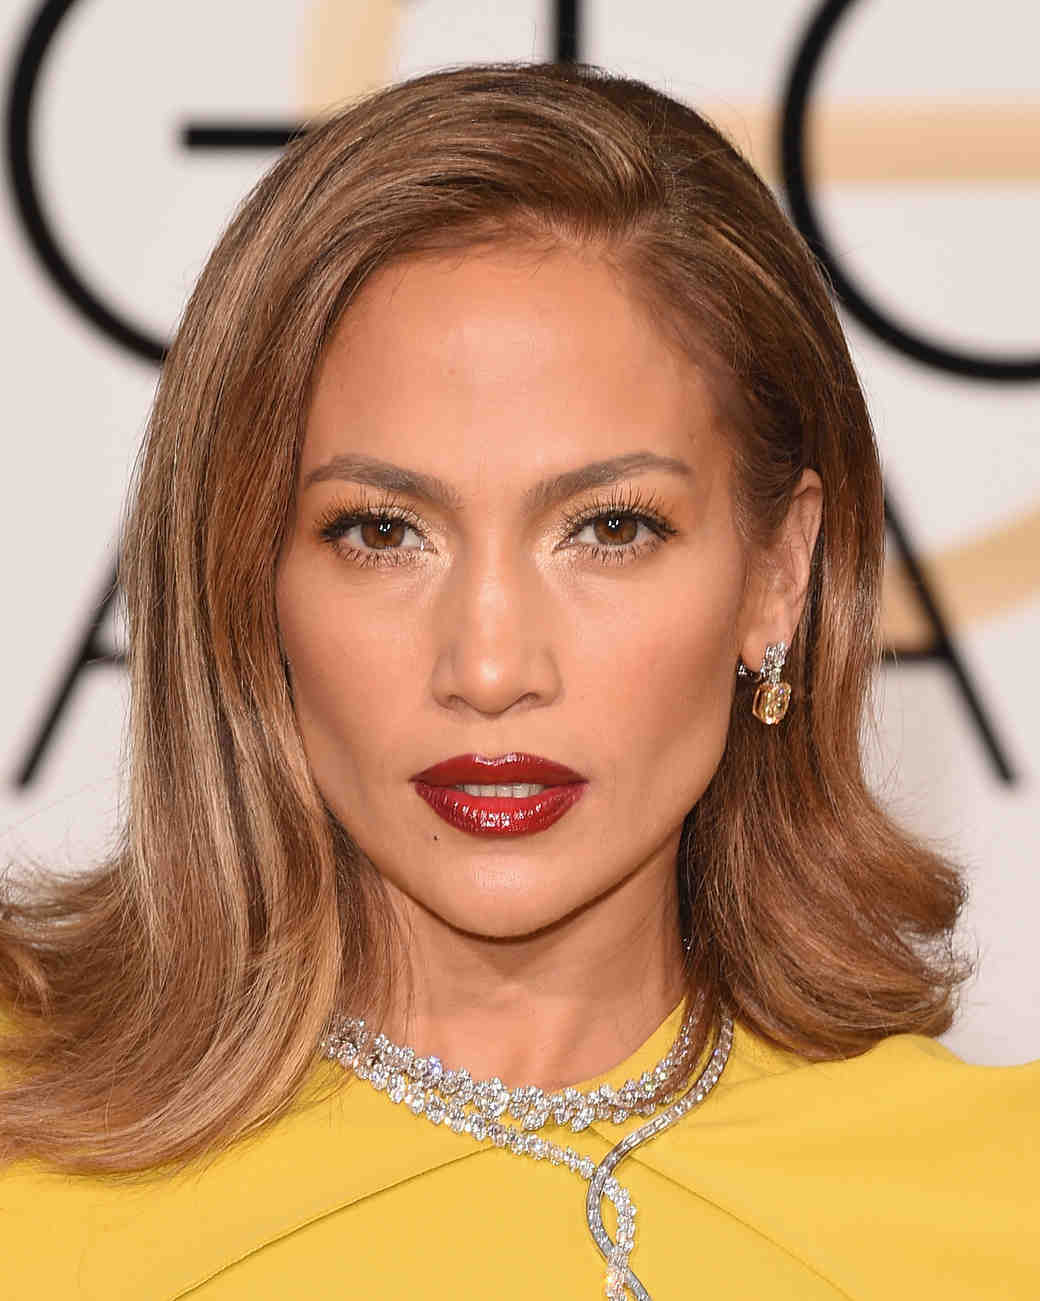 golden-globes-2016-makeup-looks-jennifer-lopez-0116.jpg